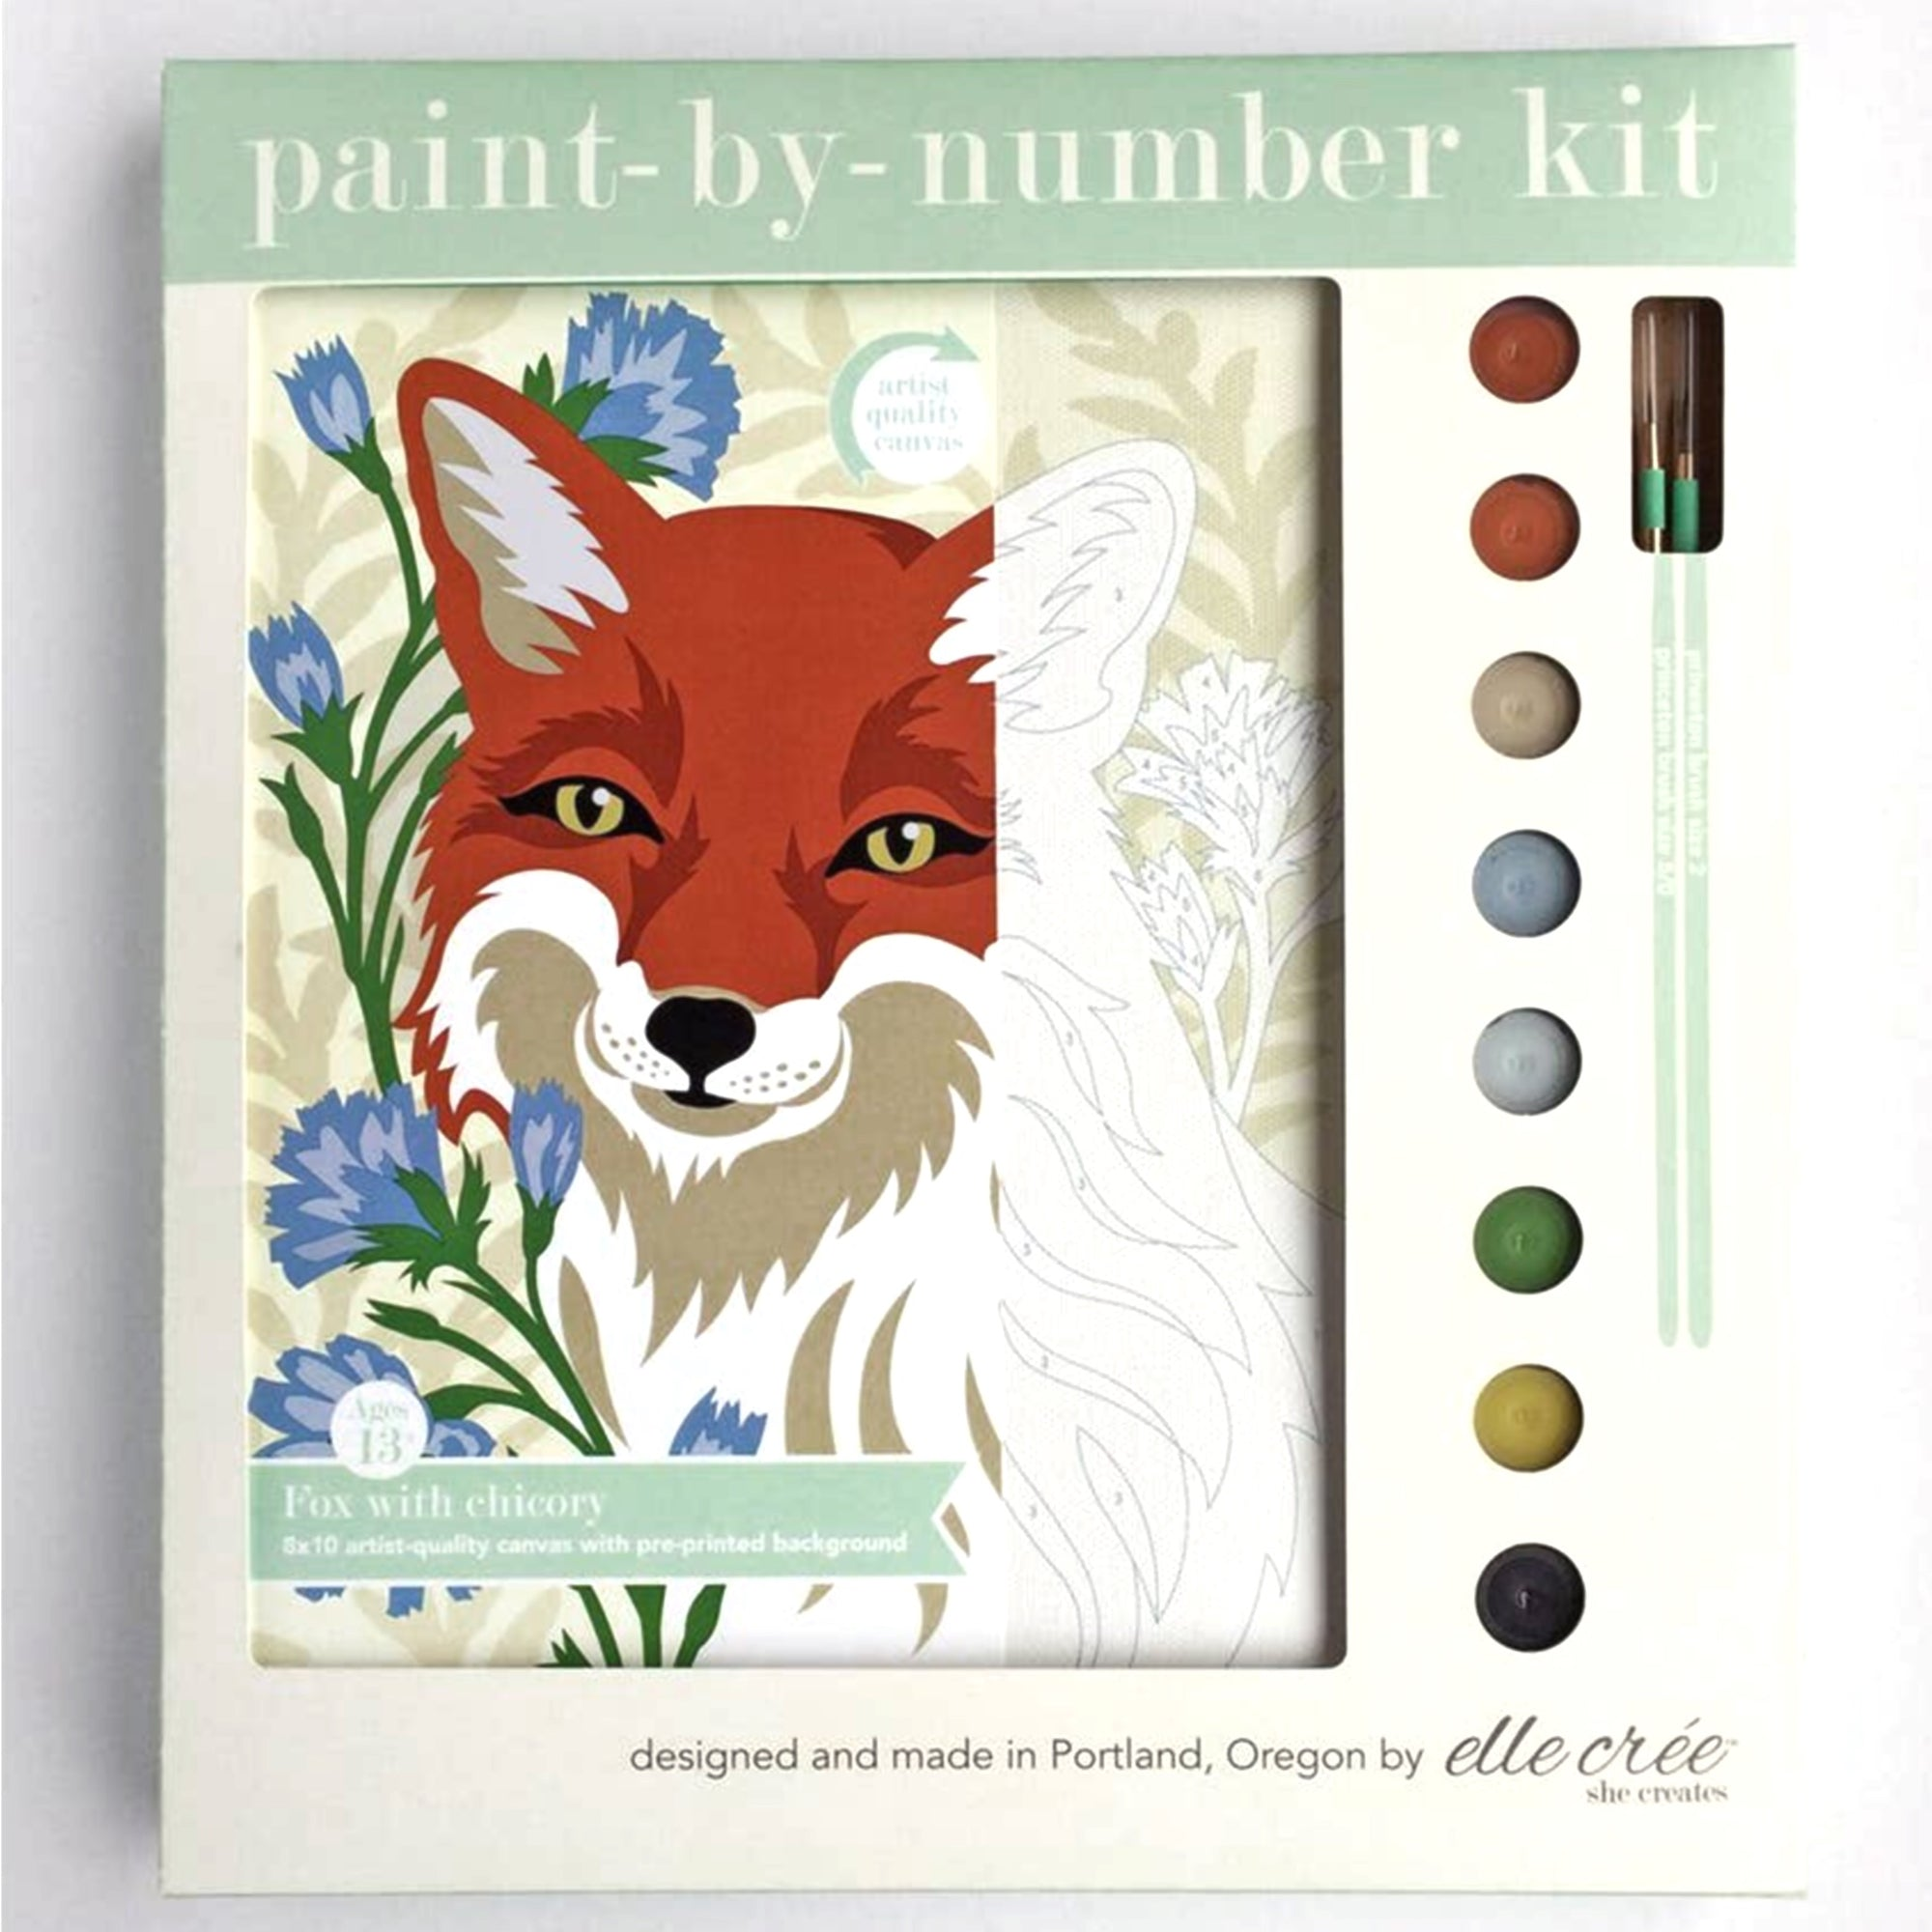 """Fox with Chicory"" Paint-by-Number Kit by elle crée"